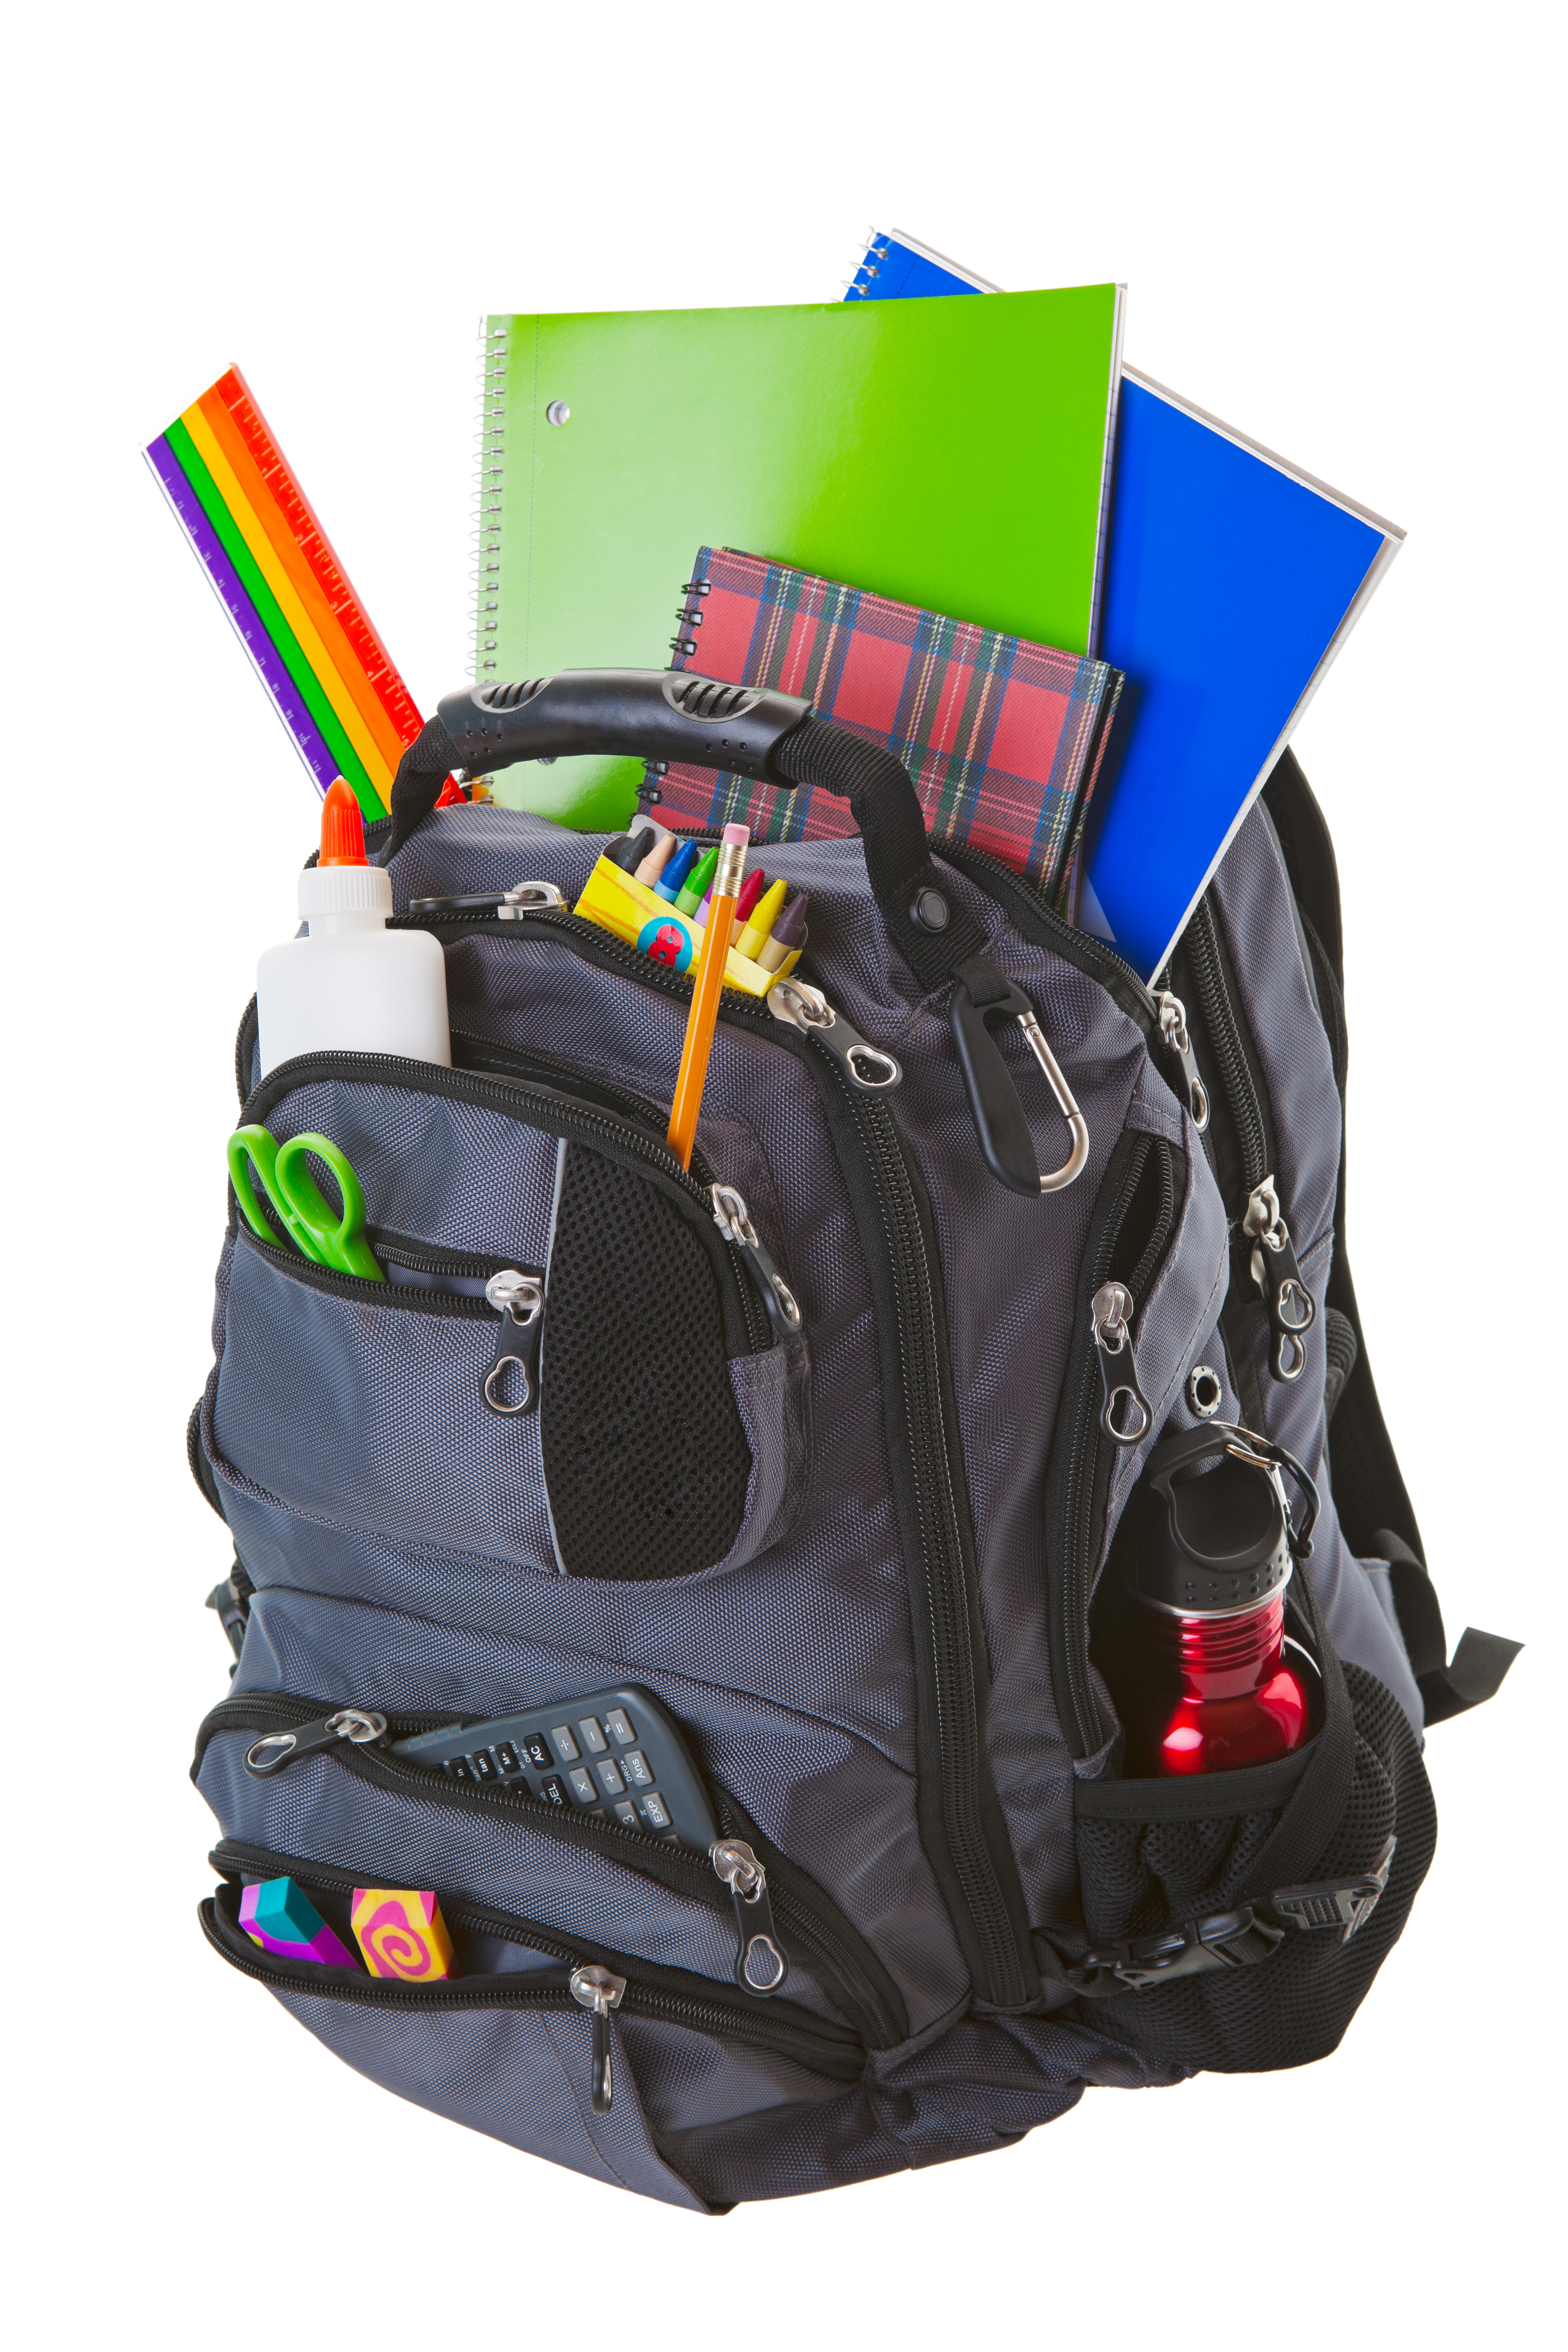 Bag clipart school supply Education Situation School backpack Supply